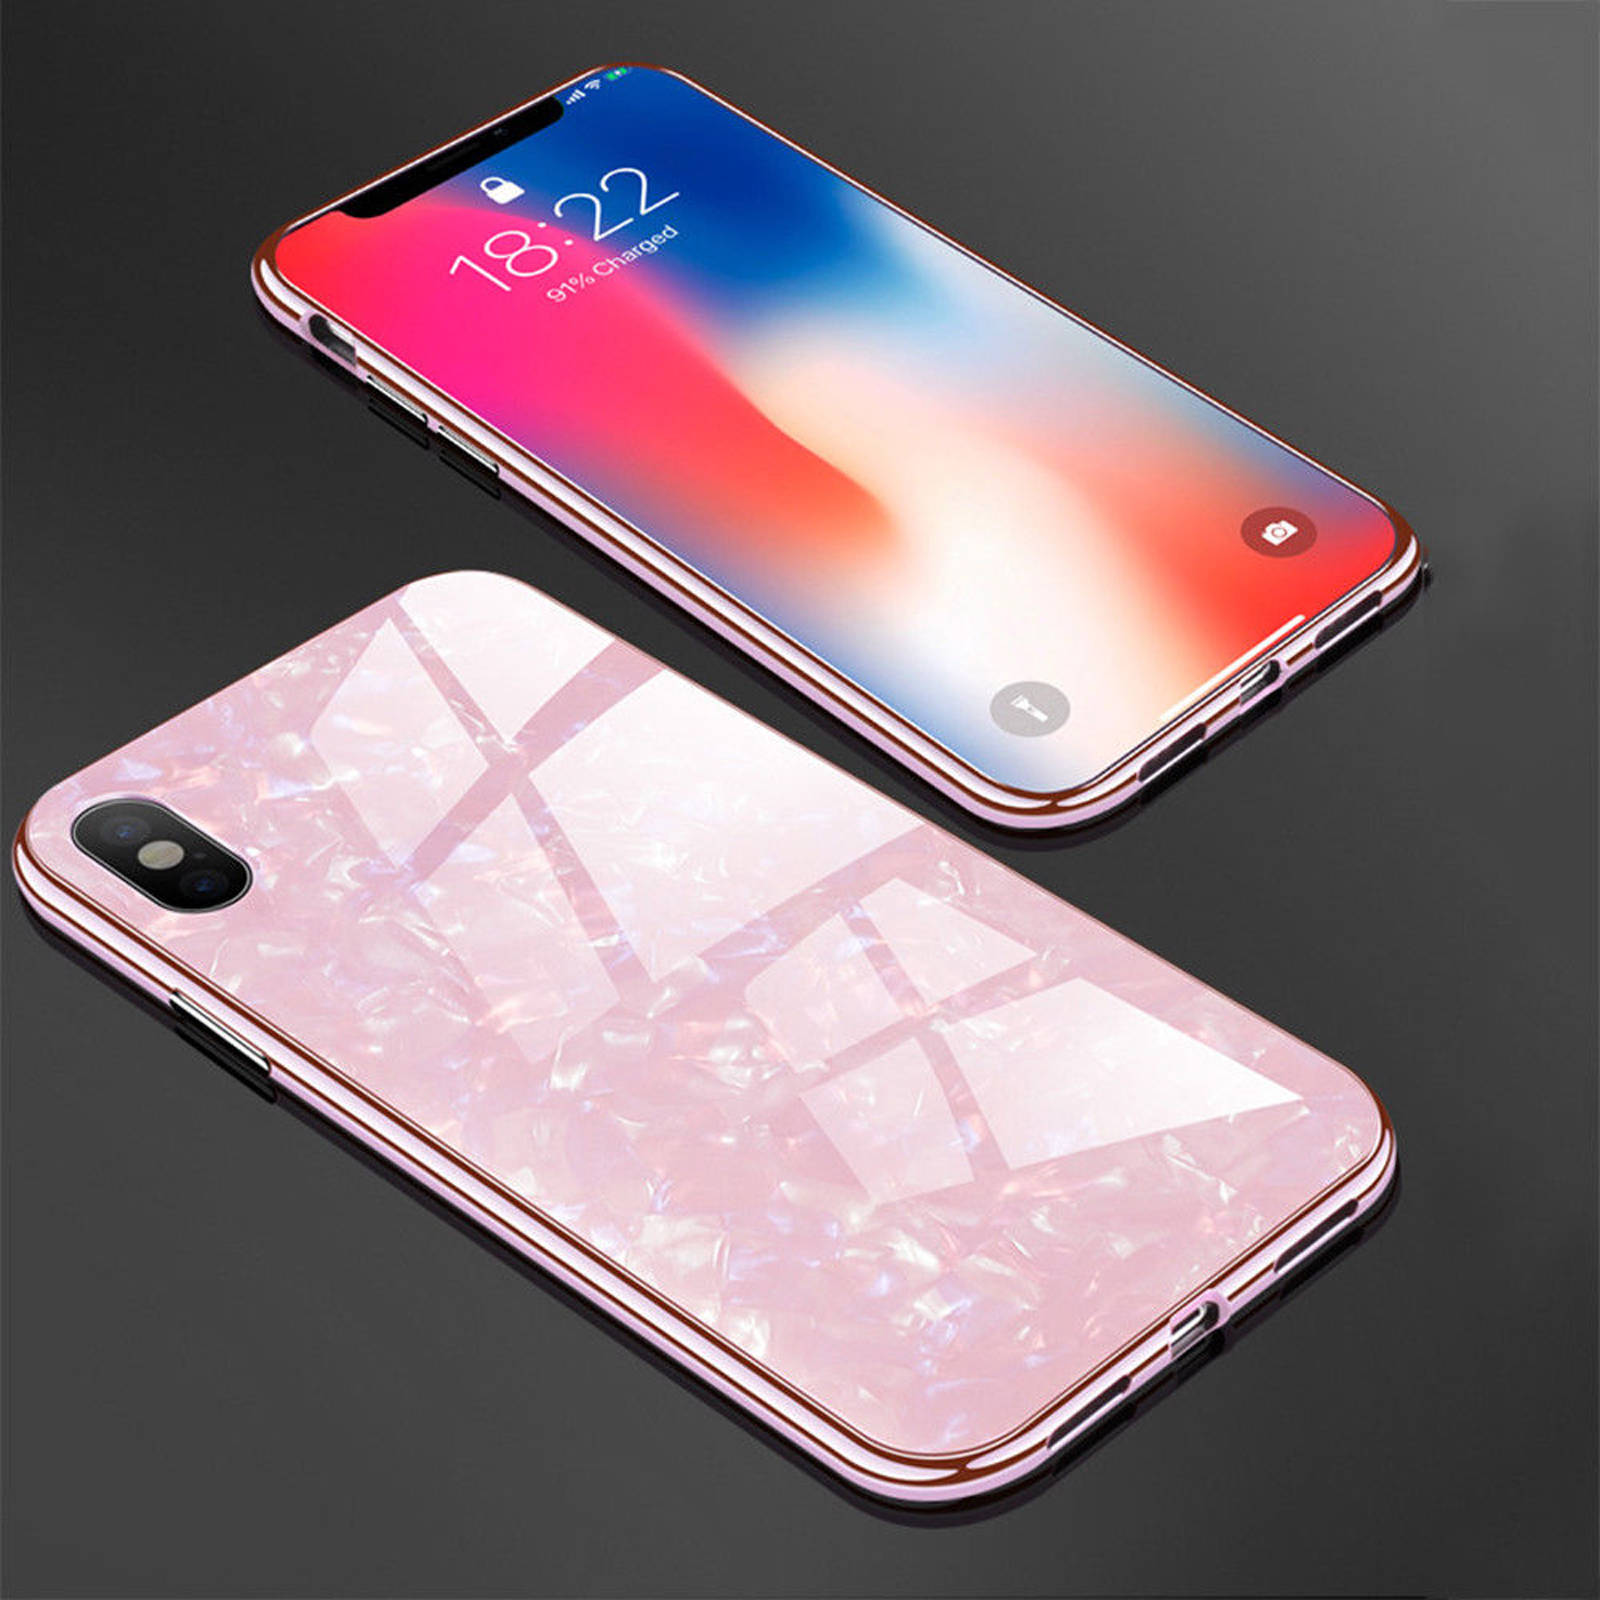 Luxury-Marble-Tempered-Glass-Case-Cover-For-Apple-iPhone-X-XS-XR-Max-10-8-7-6s-6 thumbnail 35